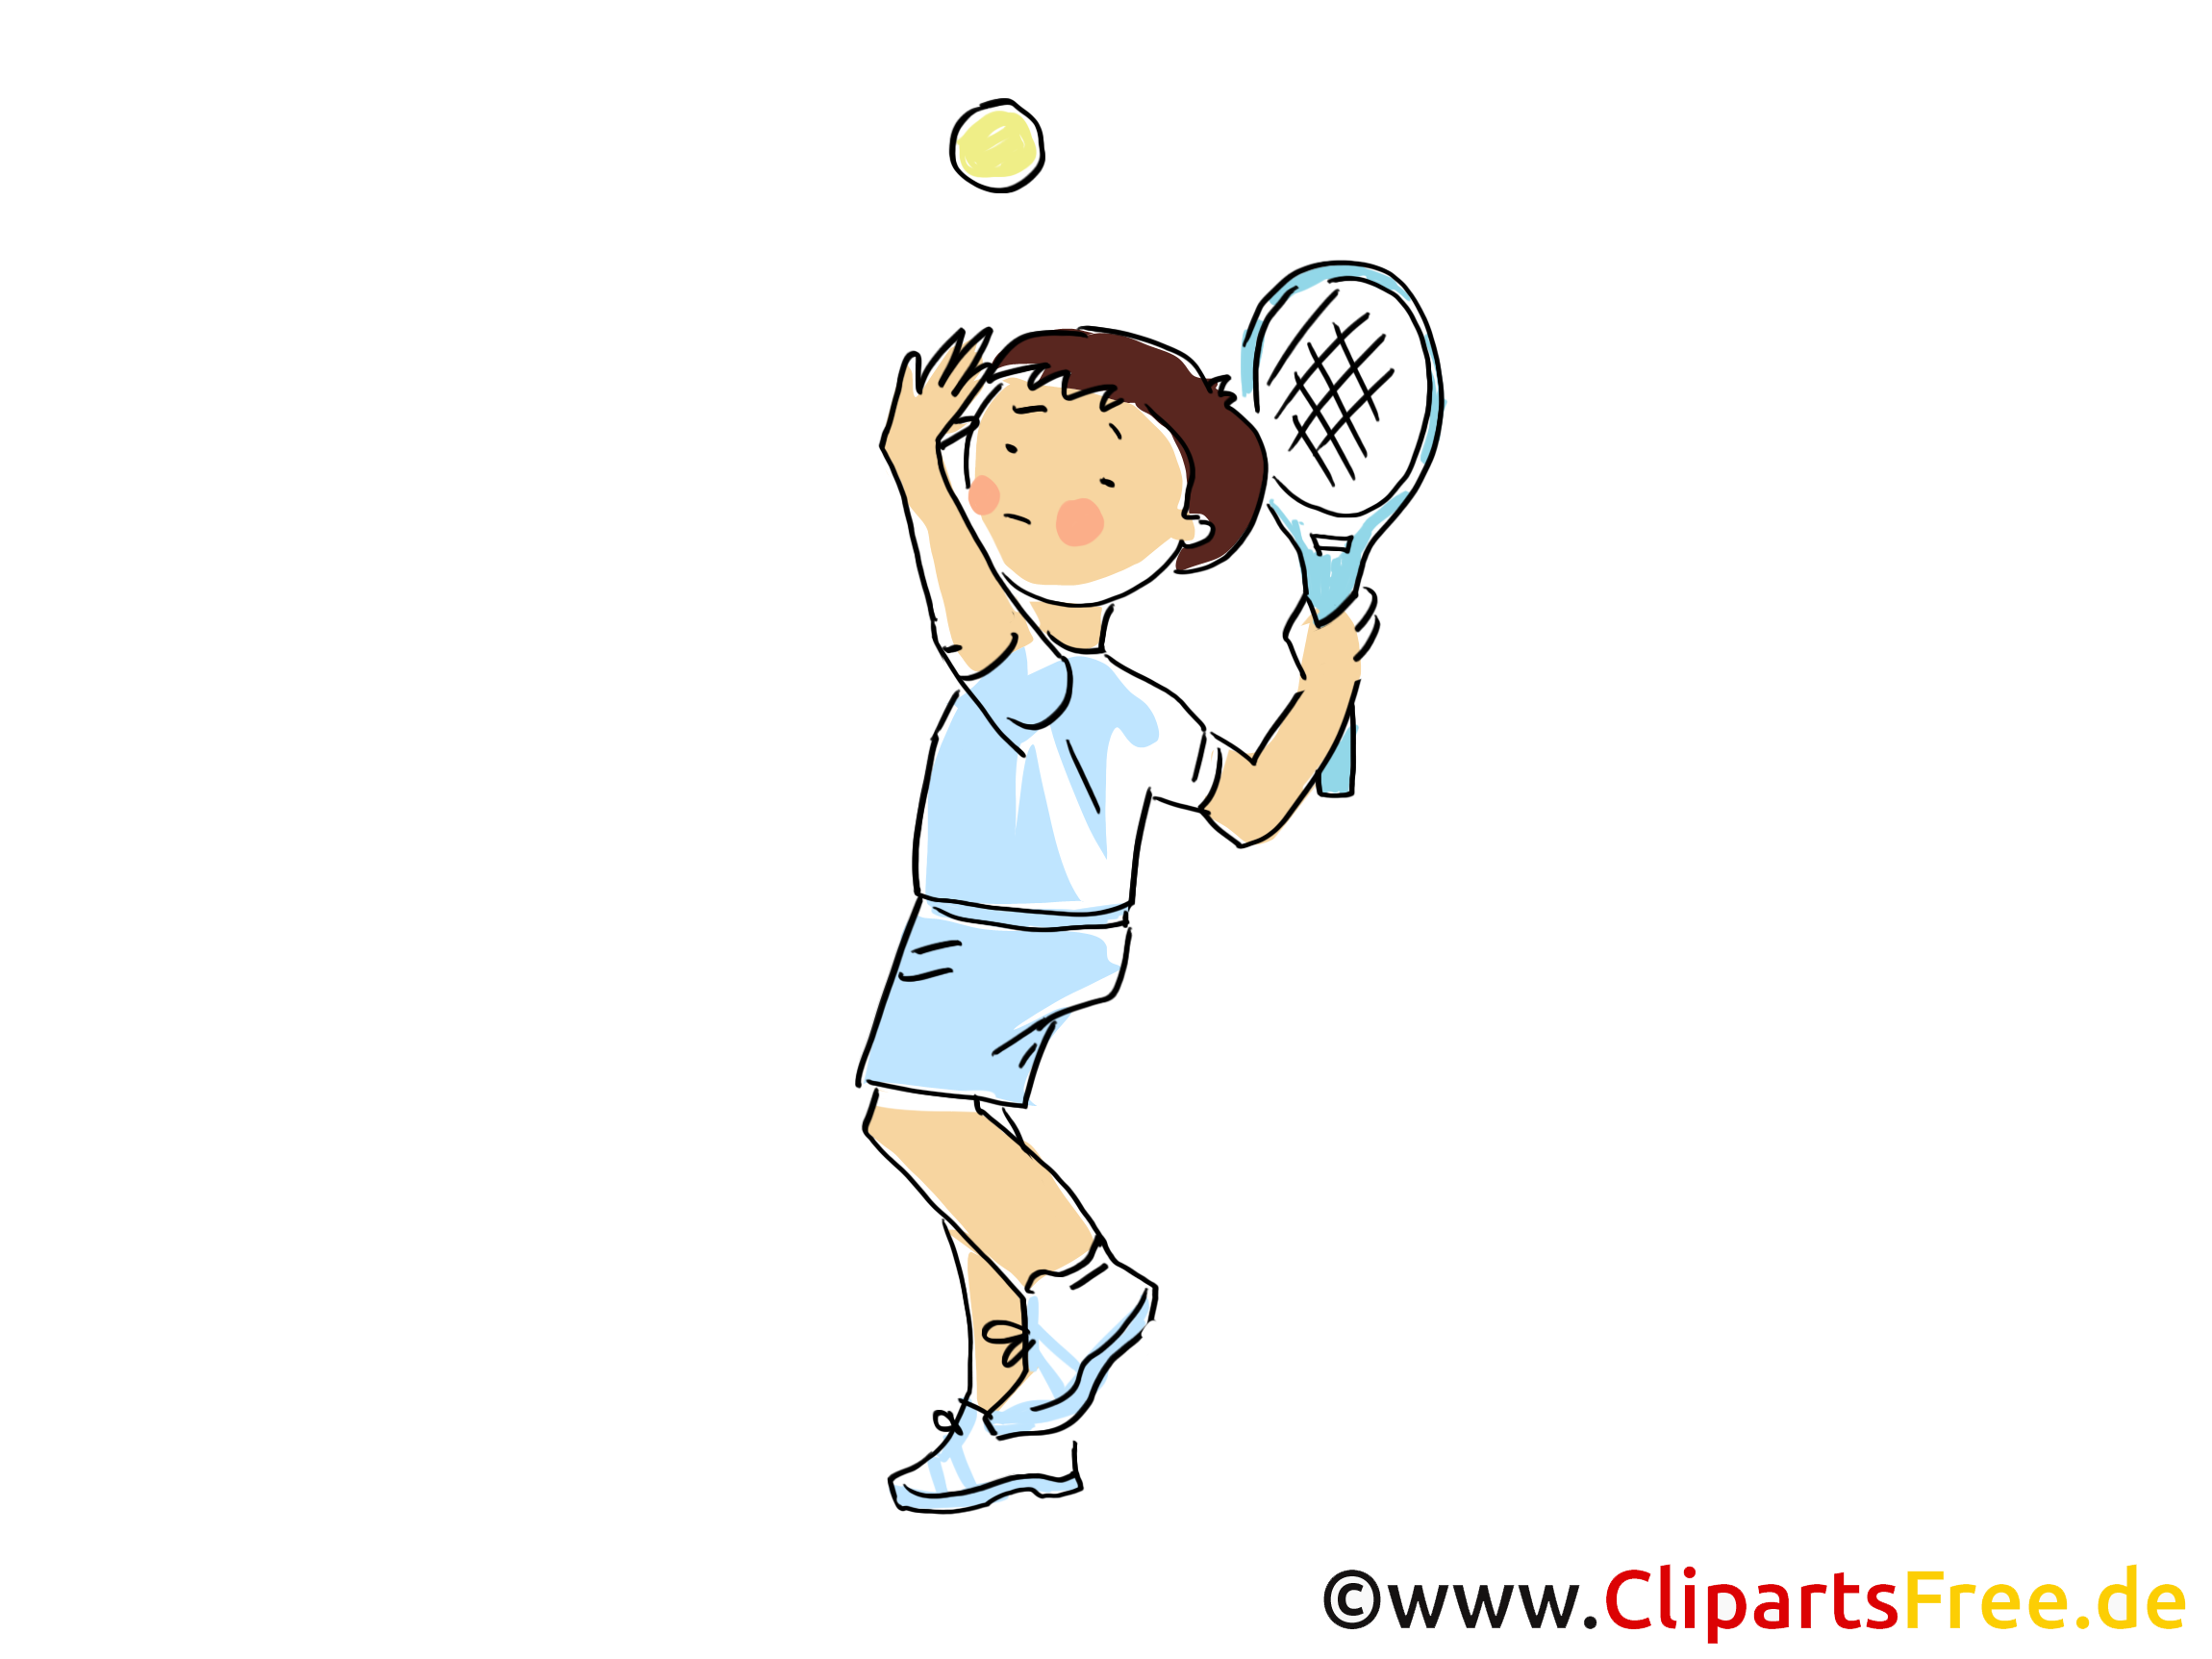 Tennis clip arts gratuits - Badmington illustrations